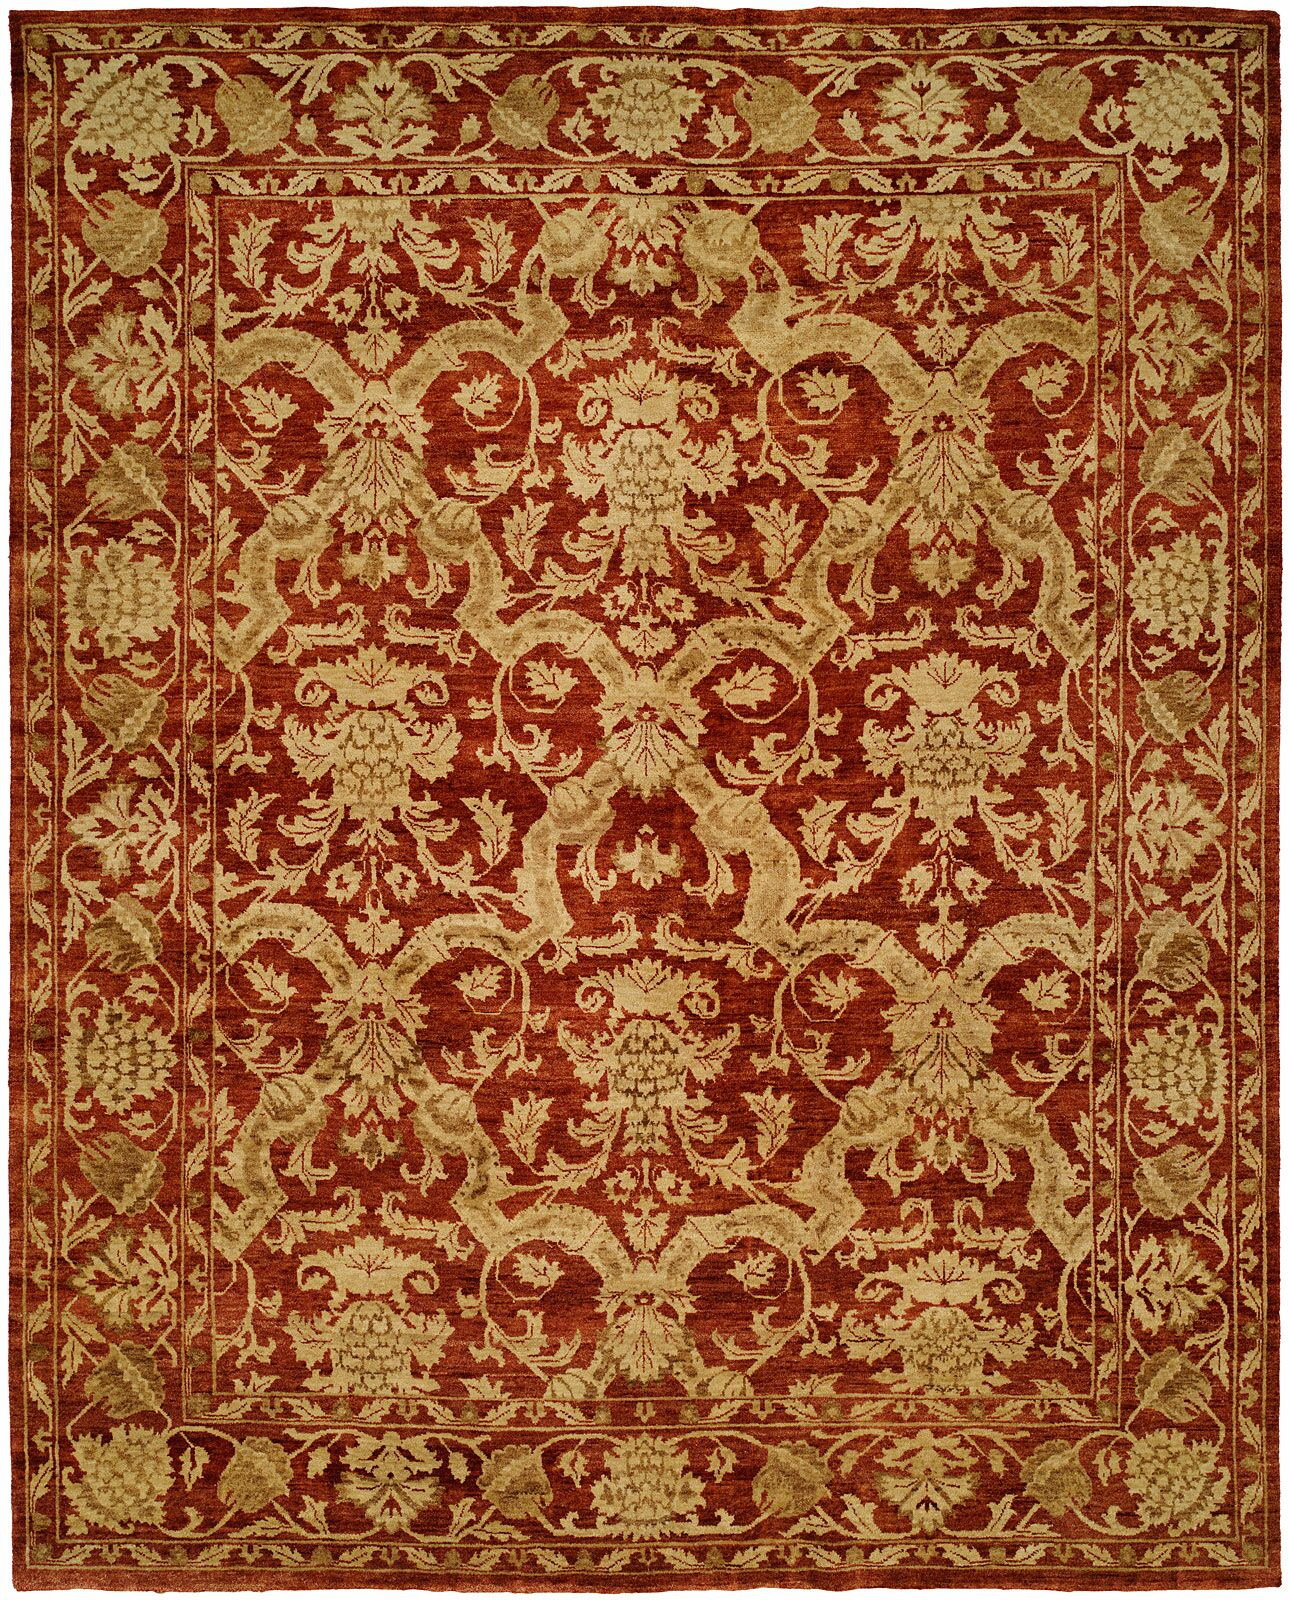 Hand-Knotted Red/Gold Area Rug Rug Size: 2' x 3'